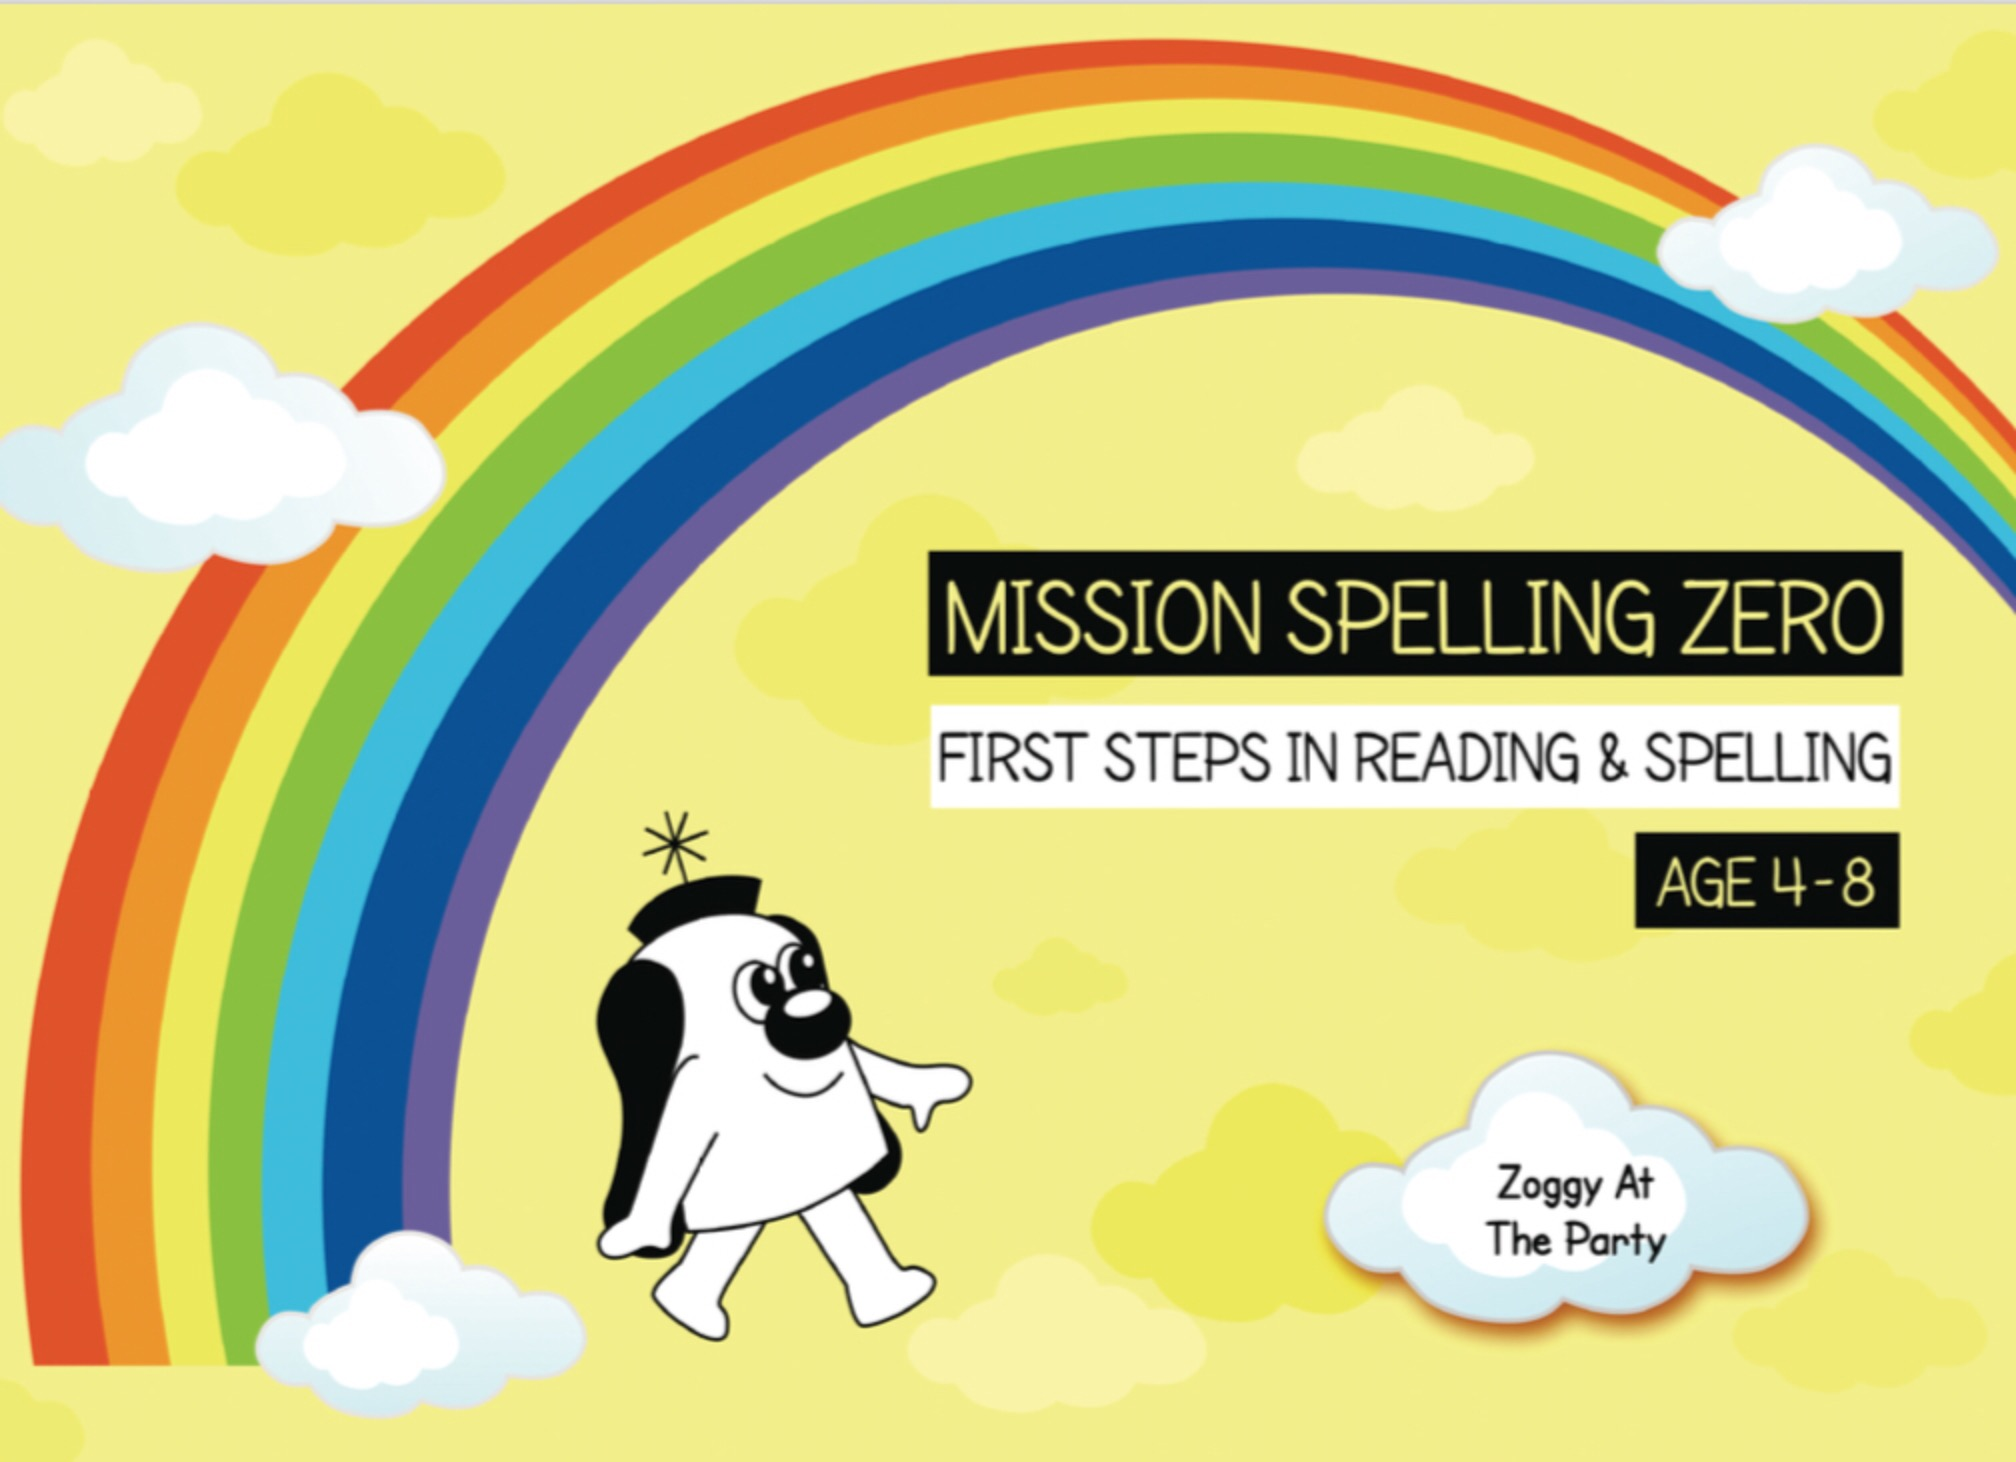 Vowel Digraphs Like OA, AI, AY, OI, OY: Zoggy At The Party (Print Edition)